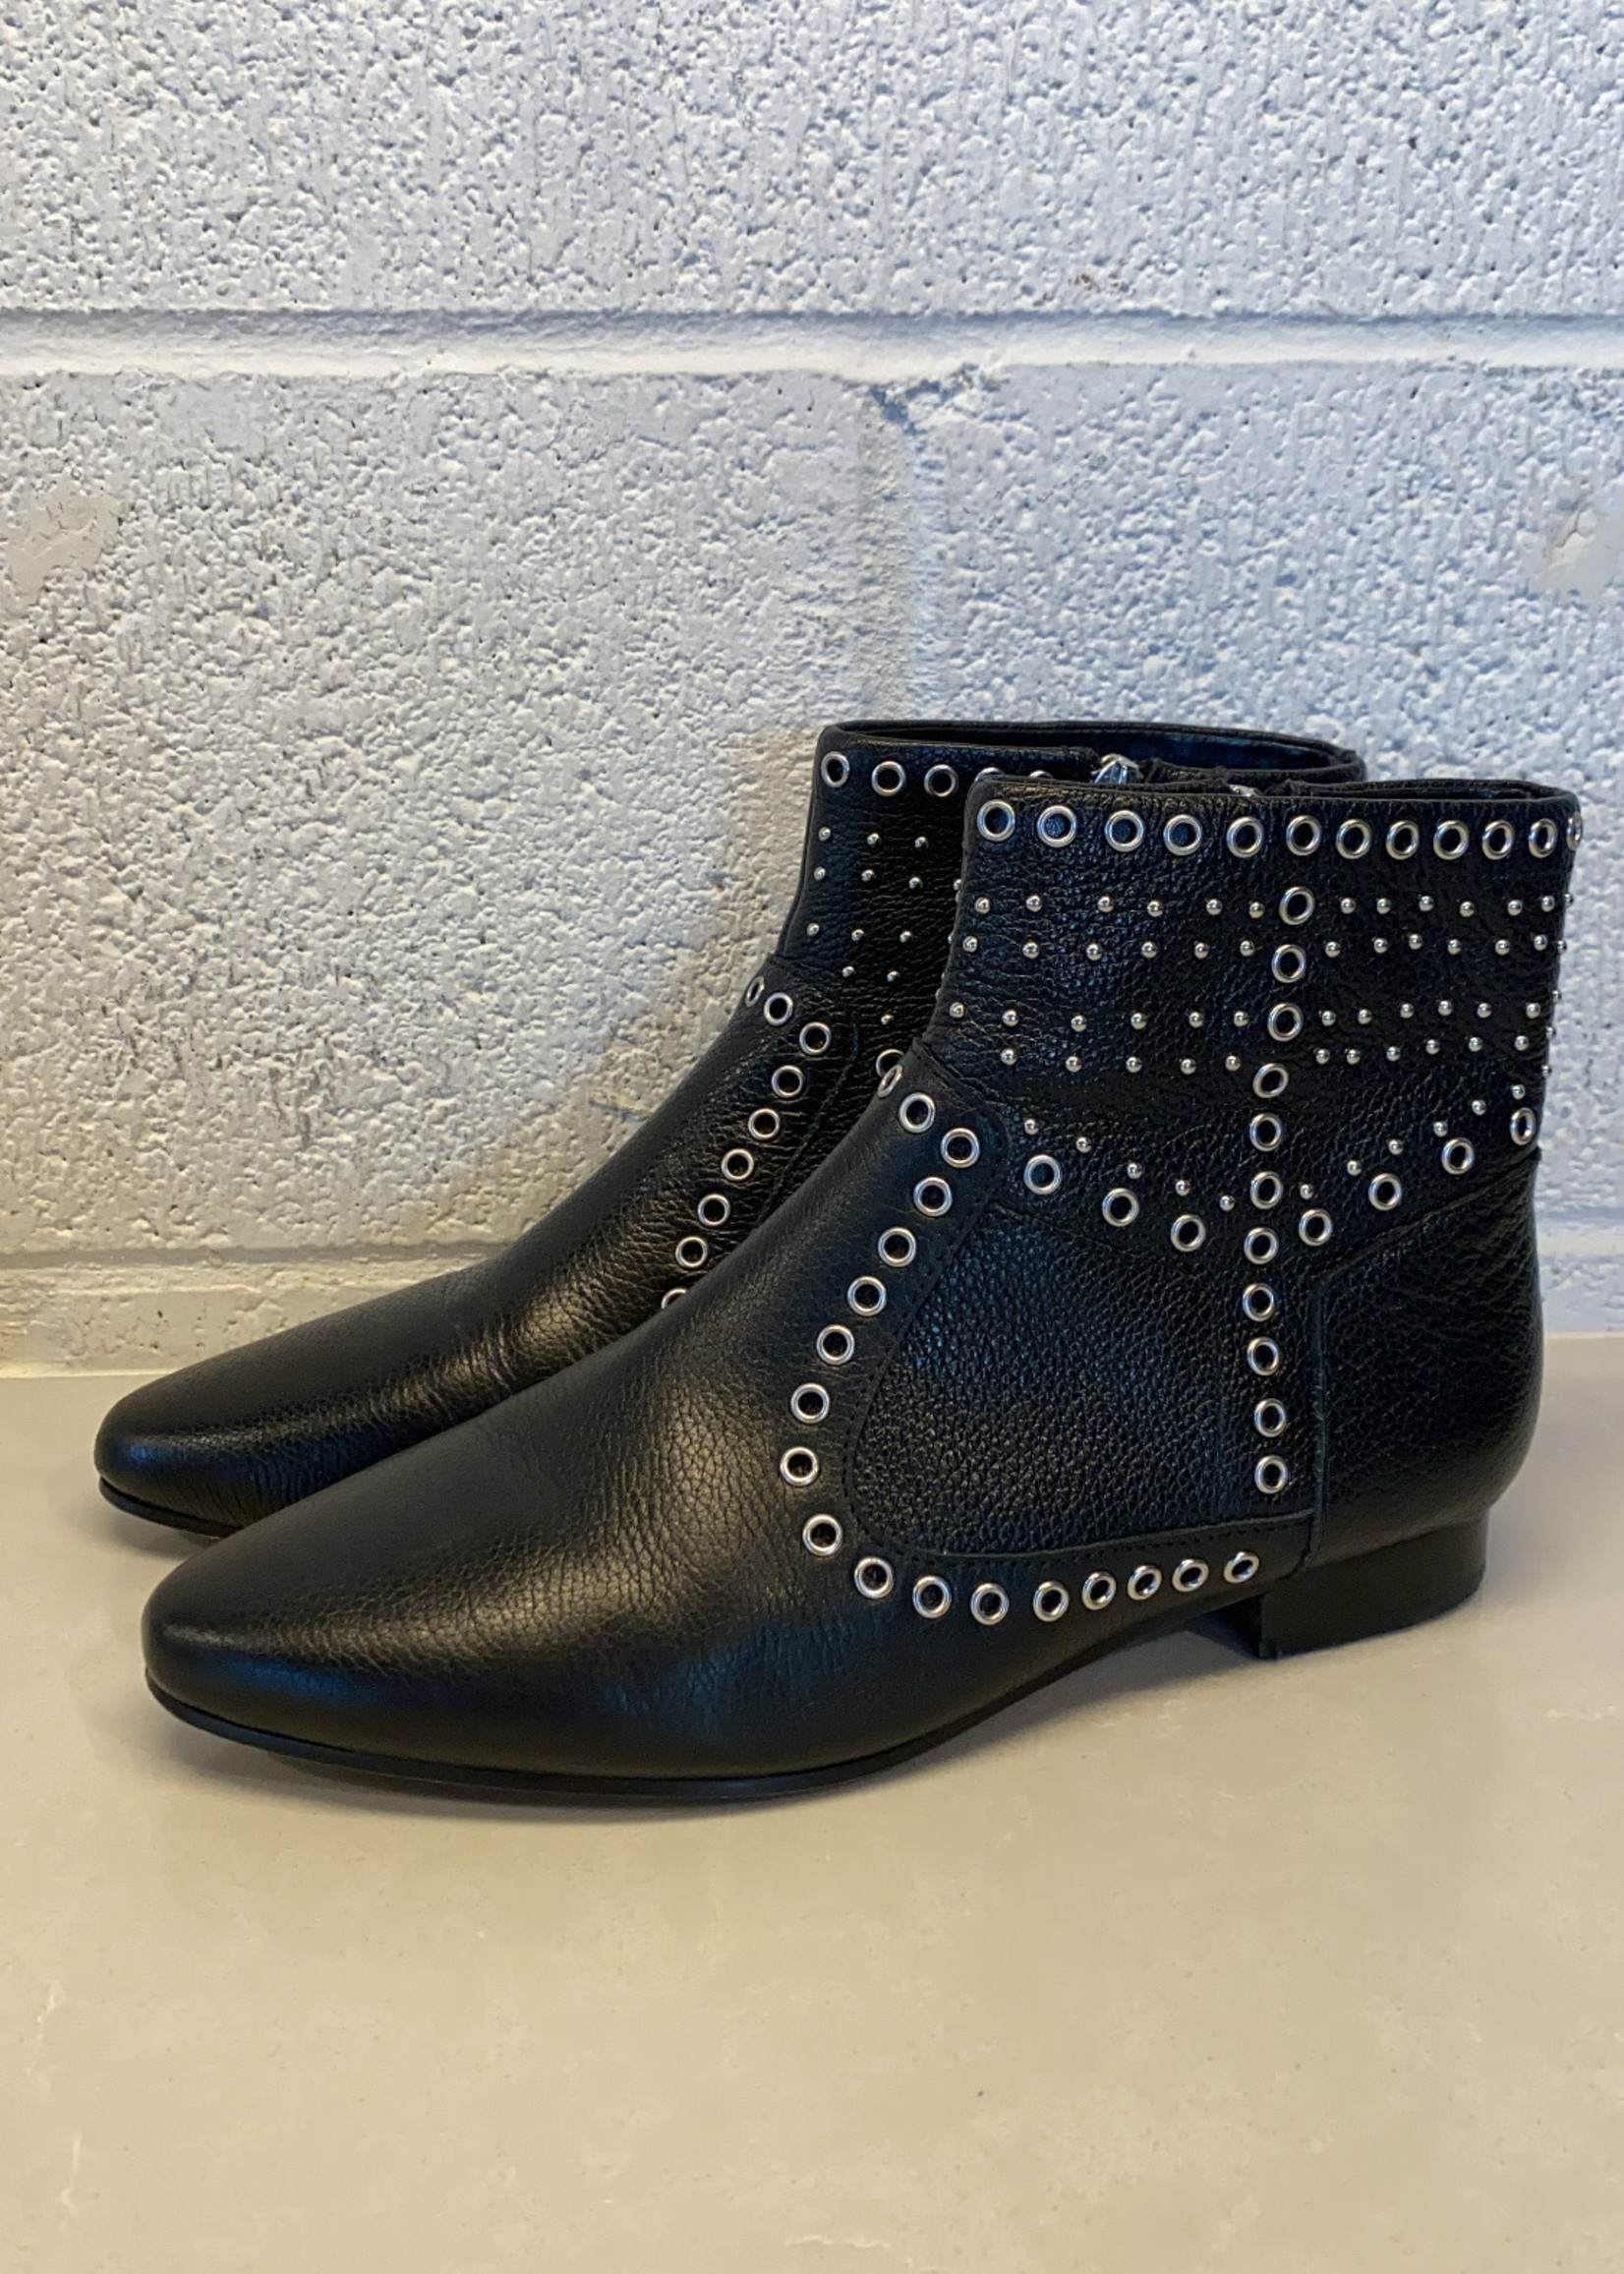 French Connection Black Leather Rivet booties 7.5